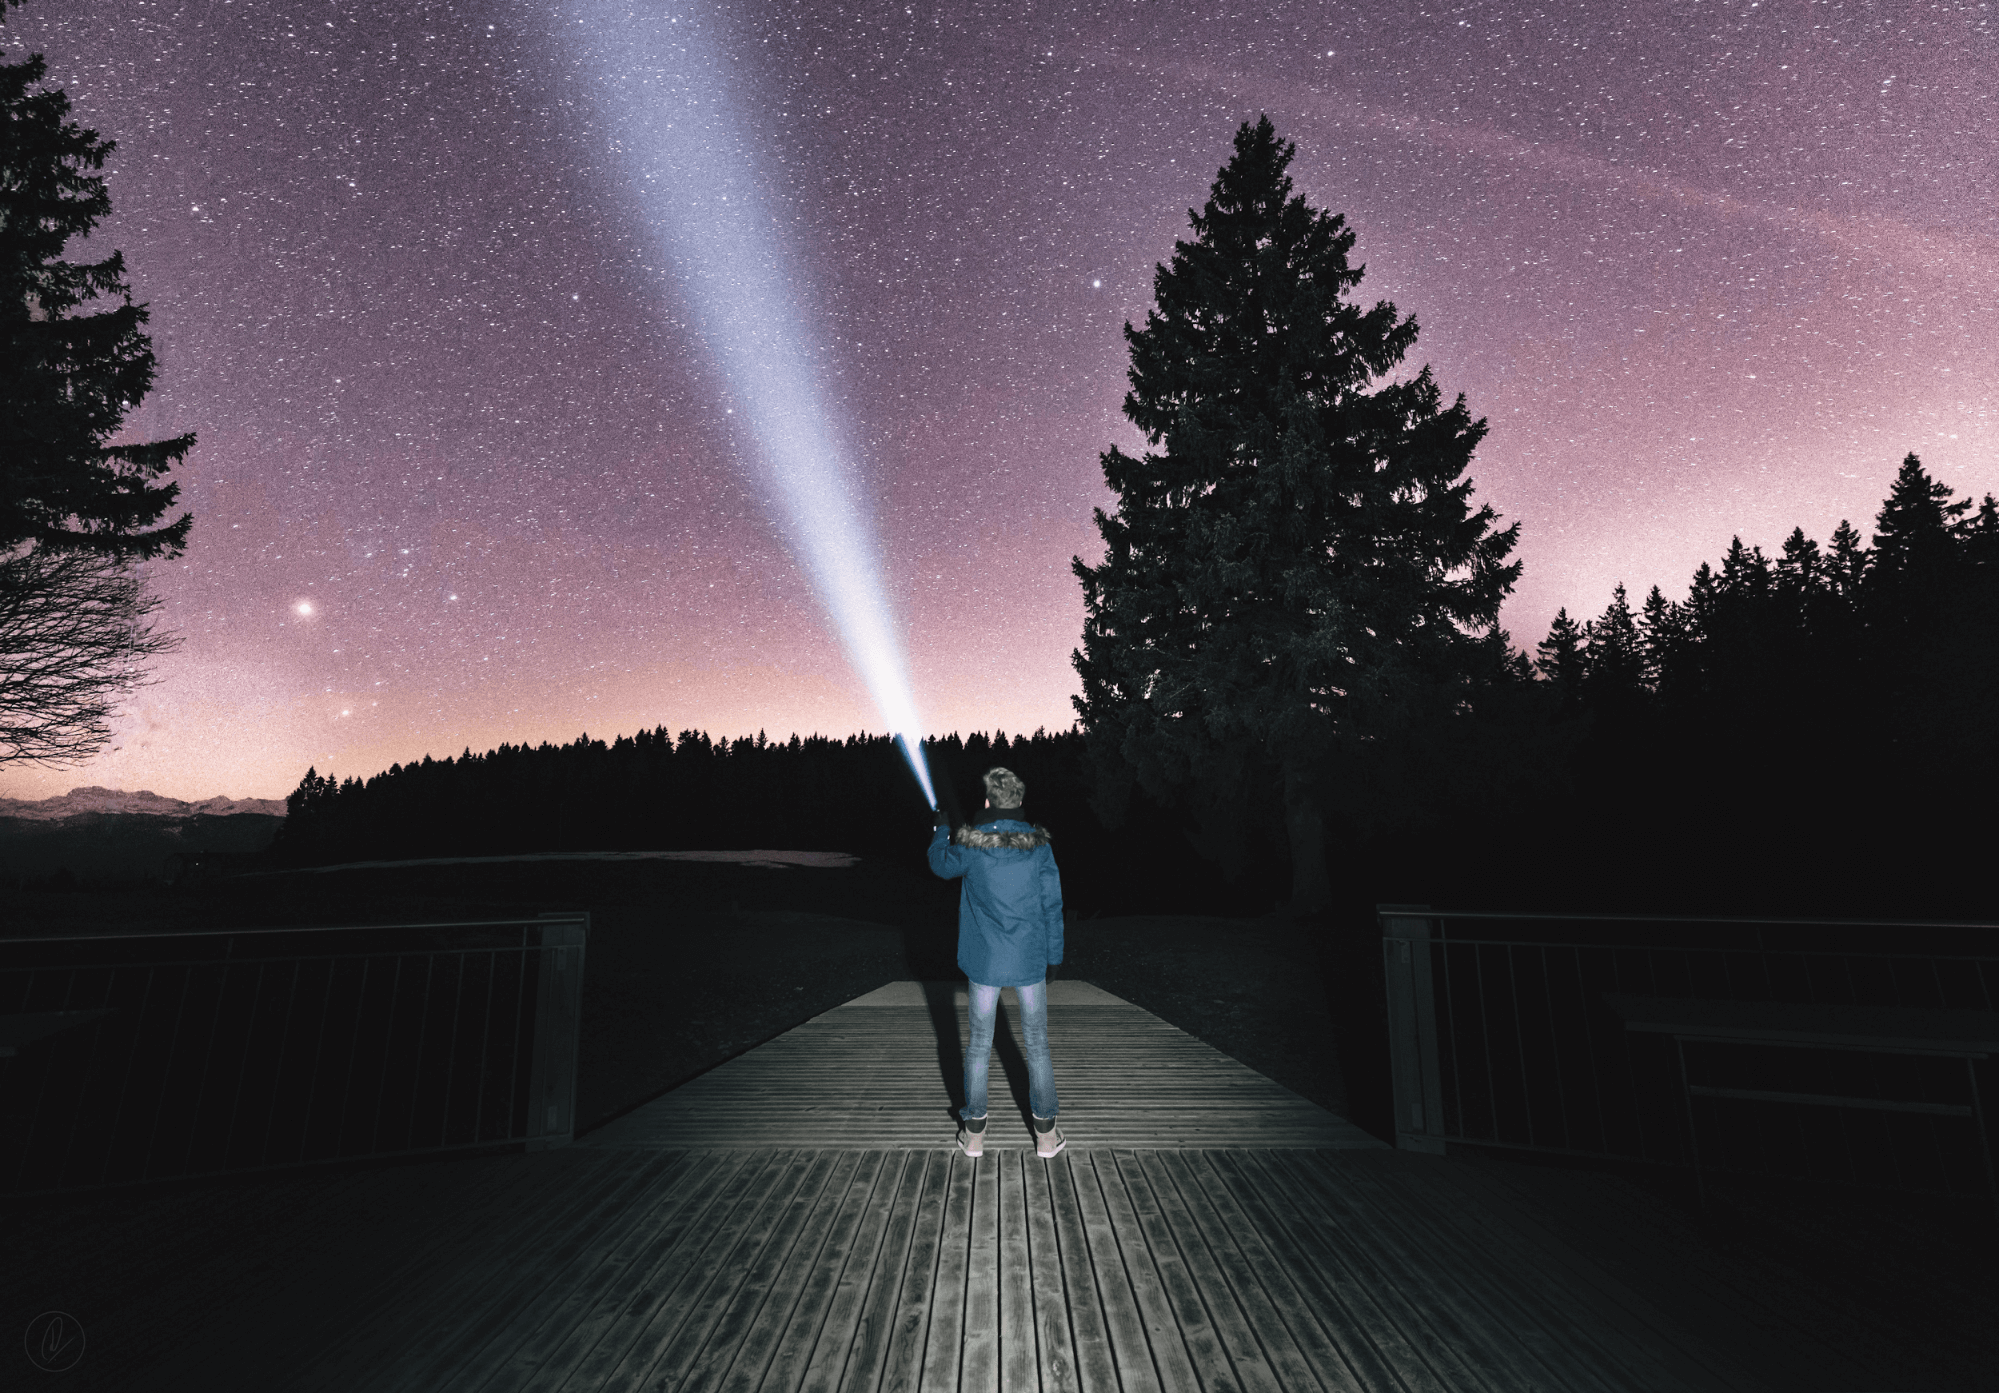 A man pointing a flashlight up at the night sky